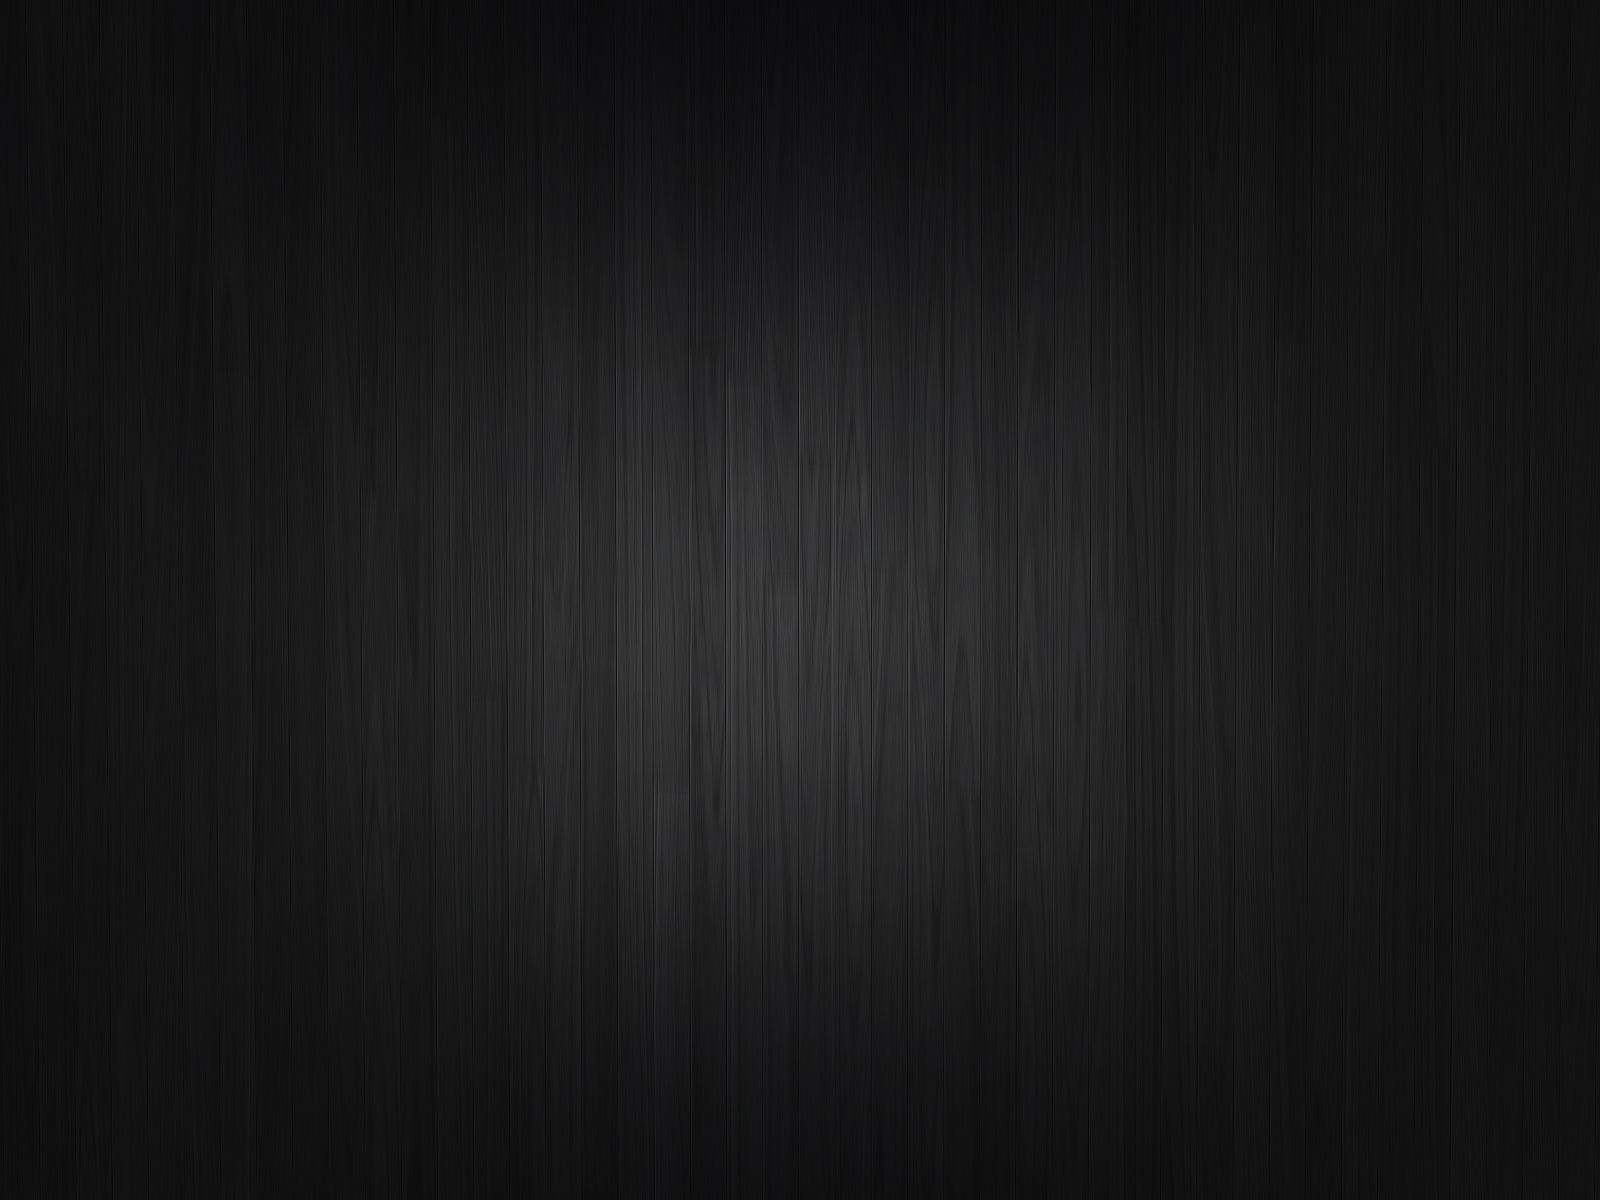 Wood Full Hd Backgrounds Black Wallpaper Full HD Wallpapers 1600x1200